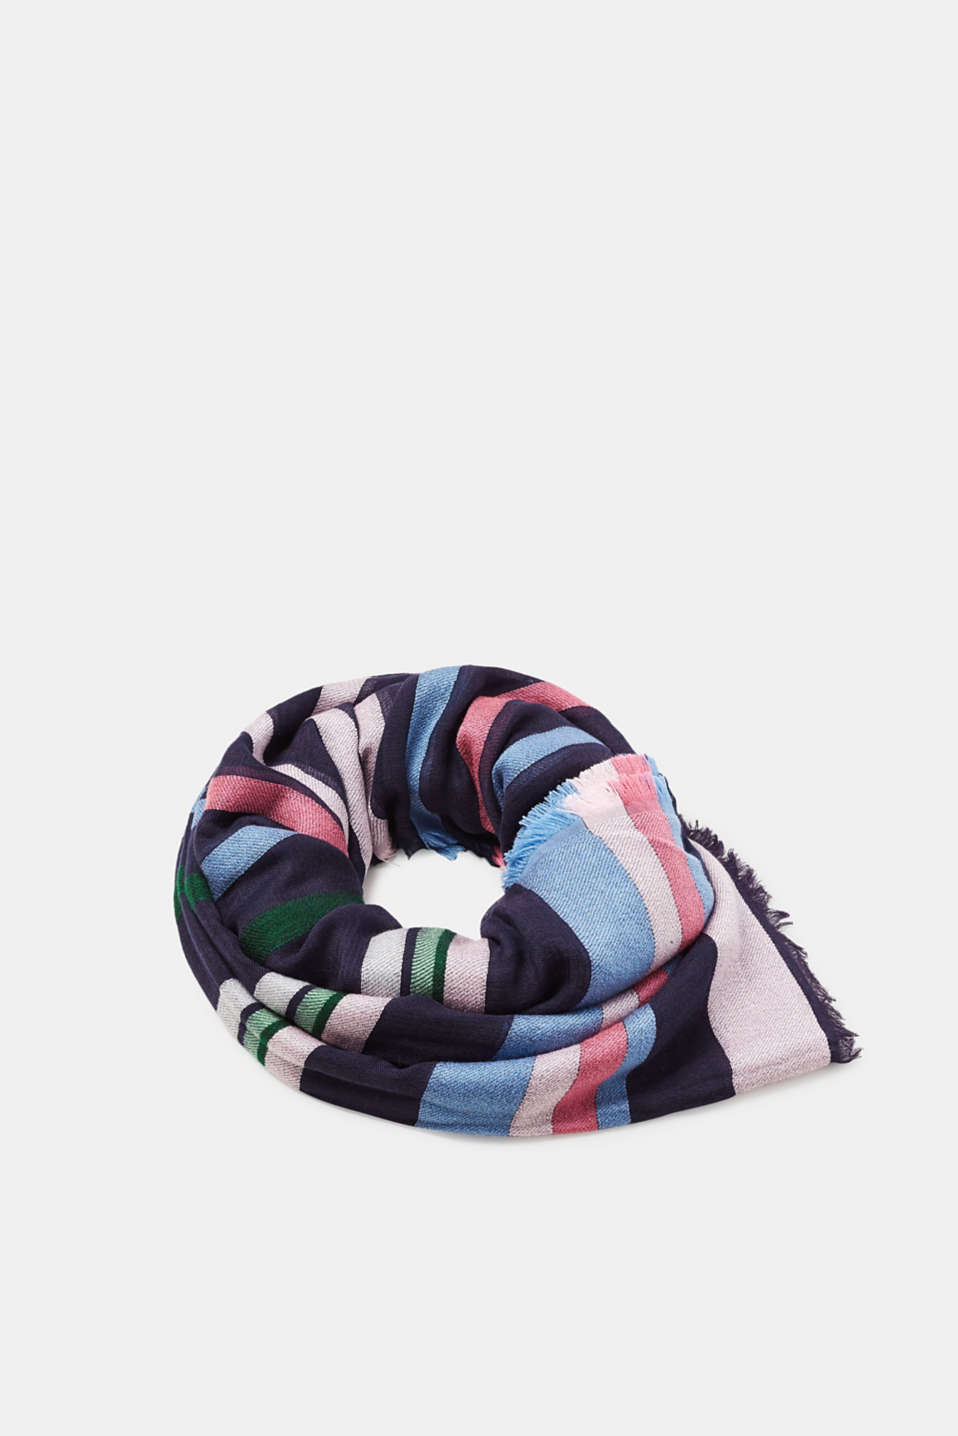 Esprit - Soft woven scarf with colourful stripes